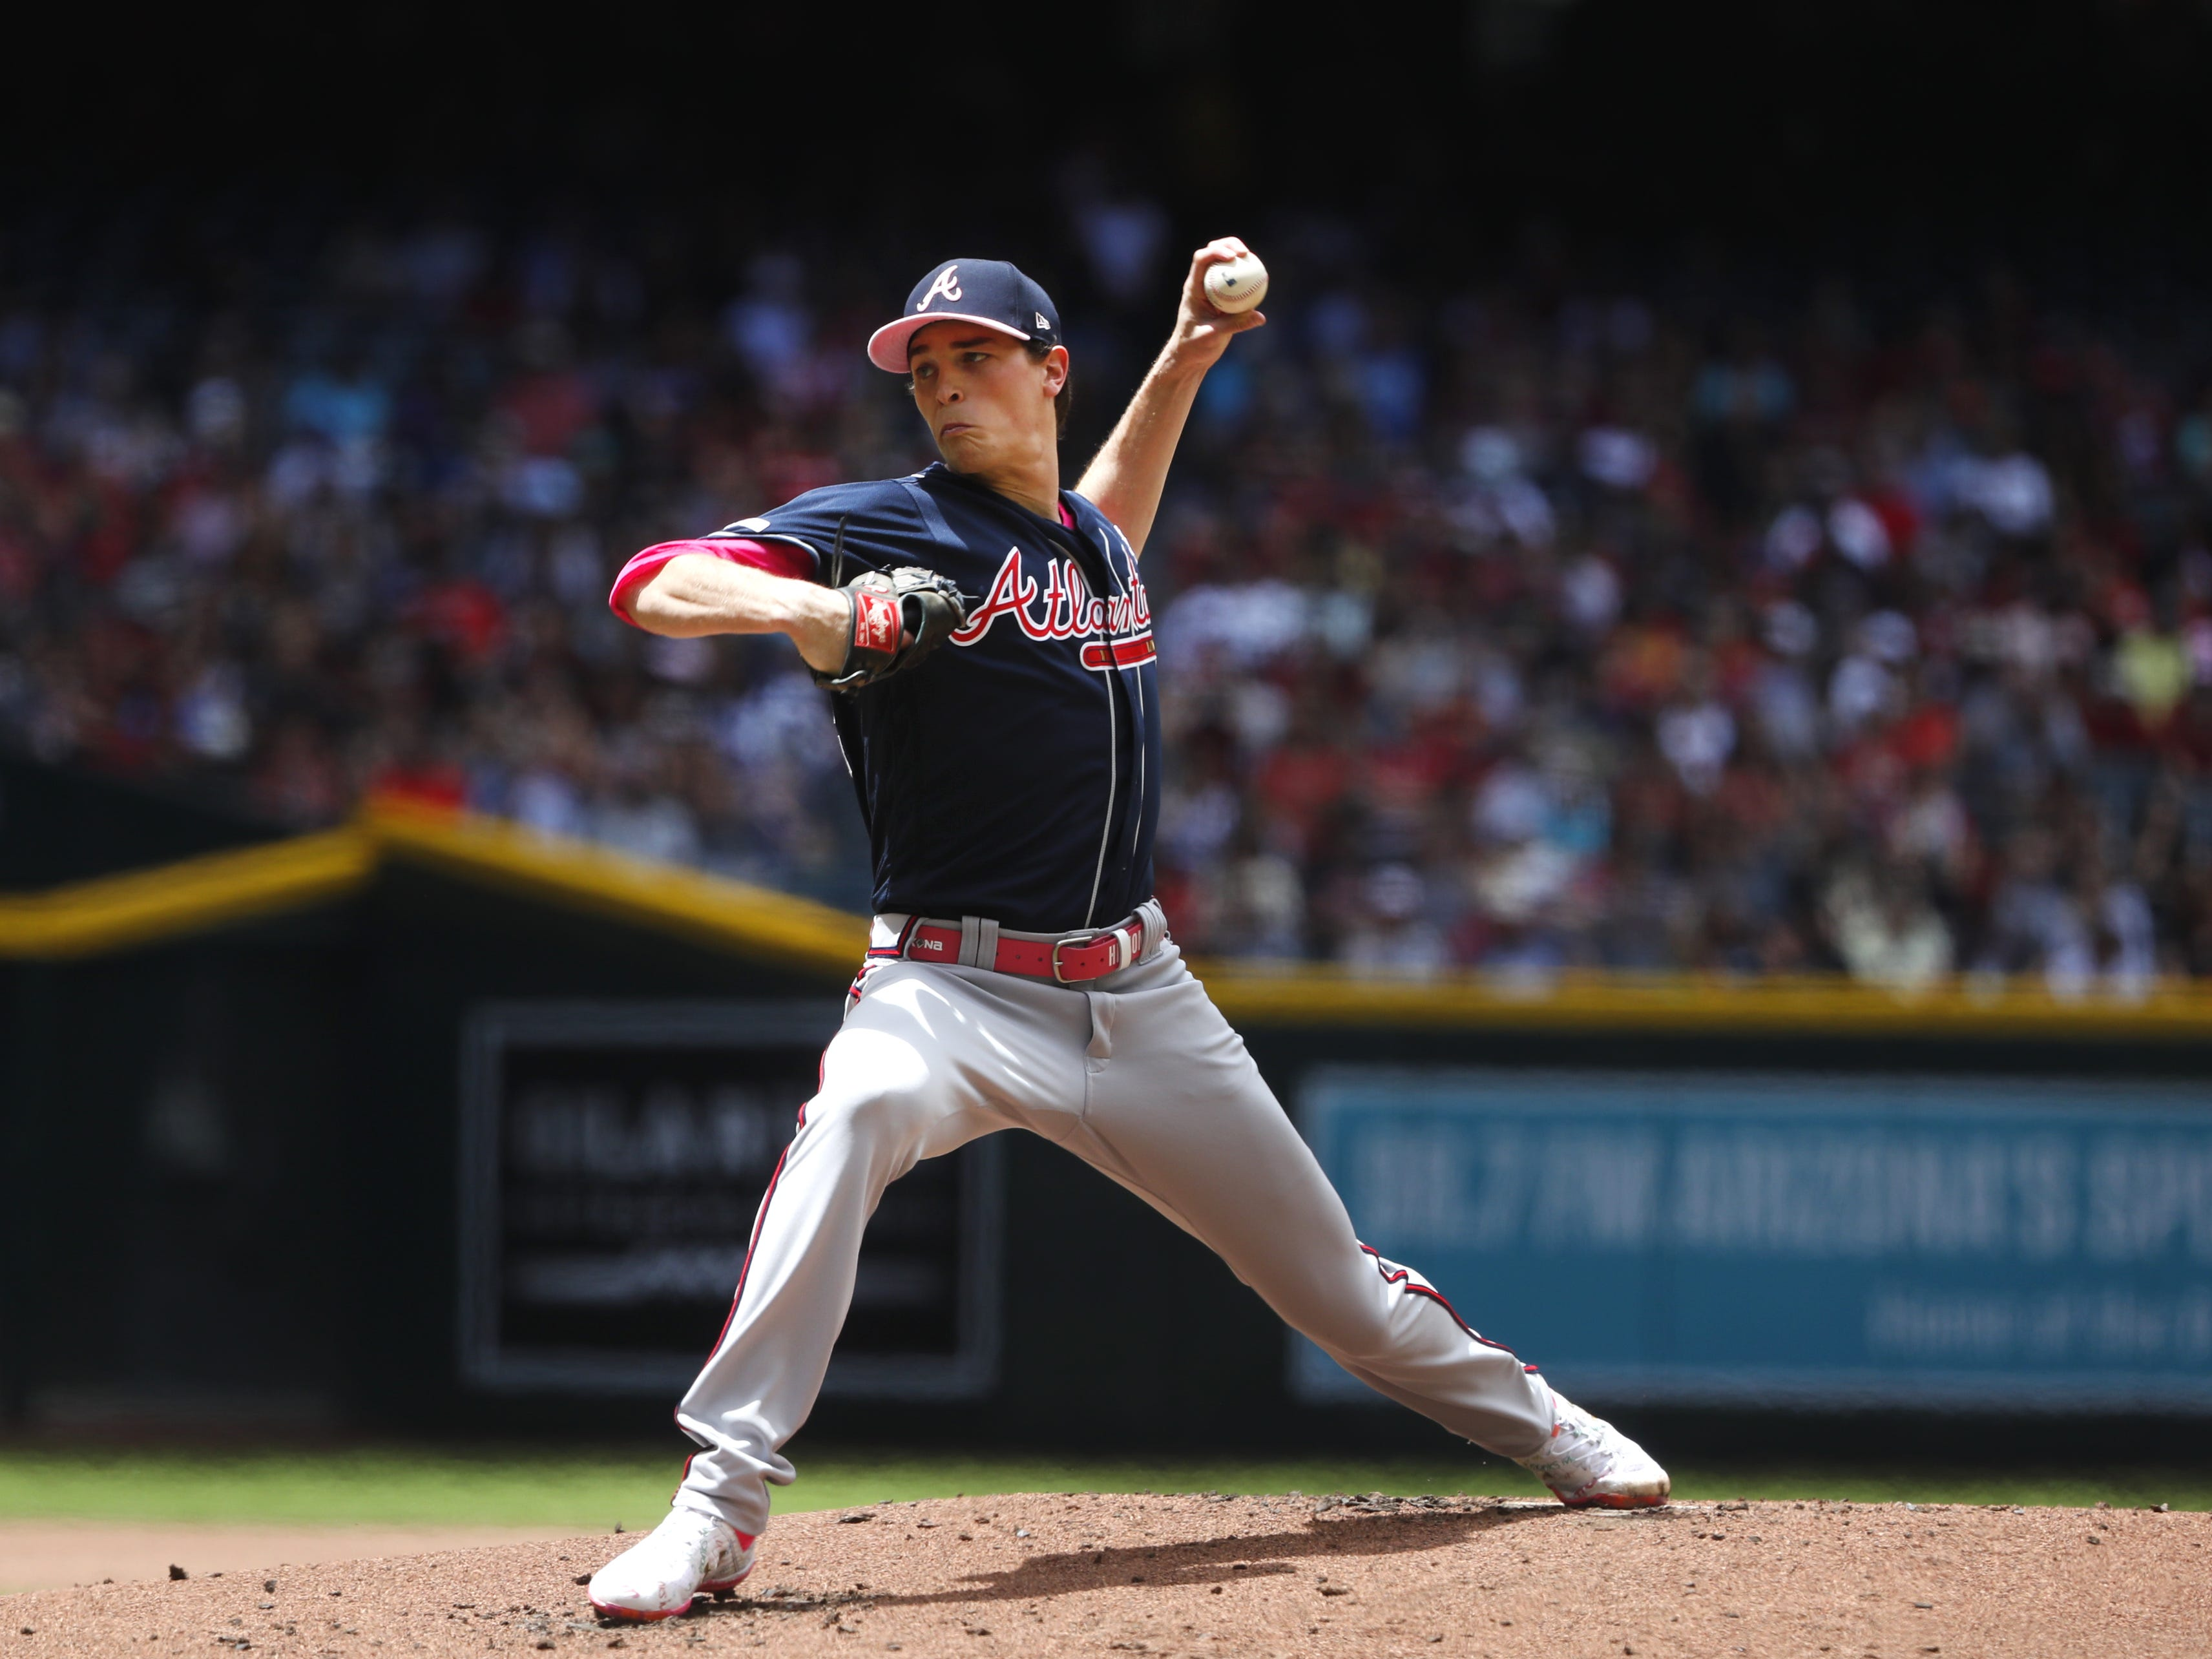 Braves' Max Fried (54) pitches against the Diamondbacks during the first inning at Chase Field in Phoenix, Ariz. on May 12, 2019.